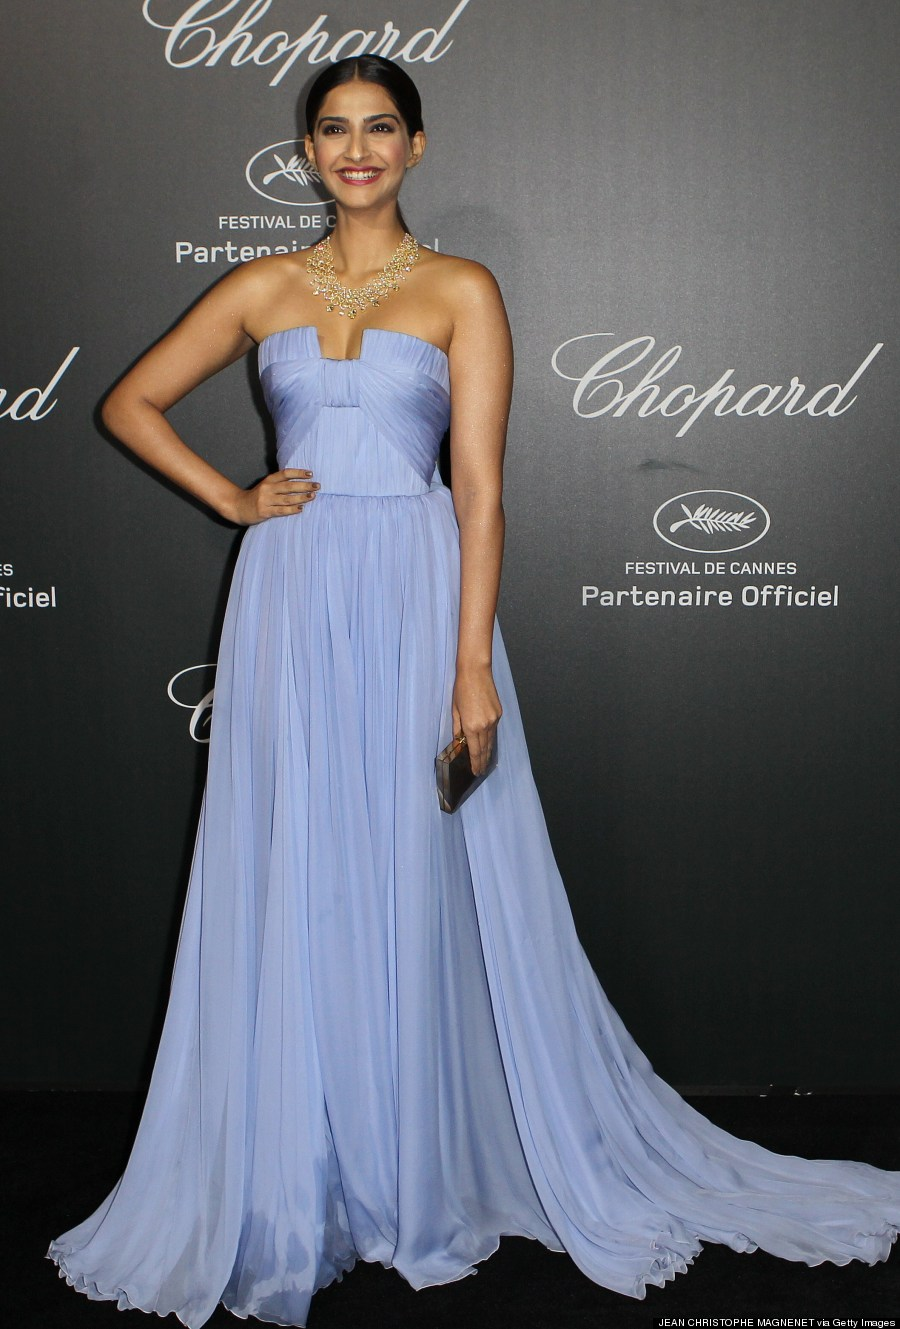 Sonam Kapoor S Best Cannes 2014 Fashion Moments So Far